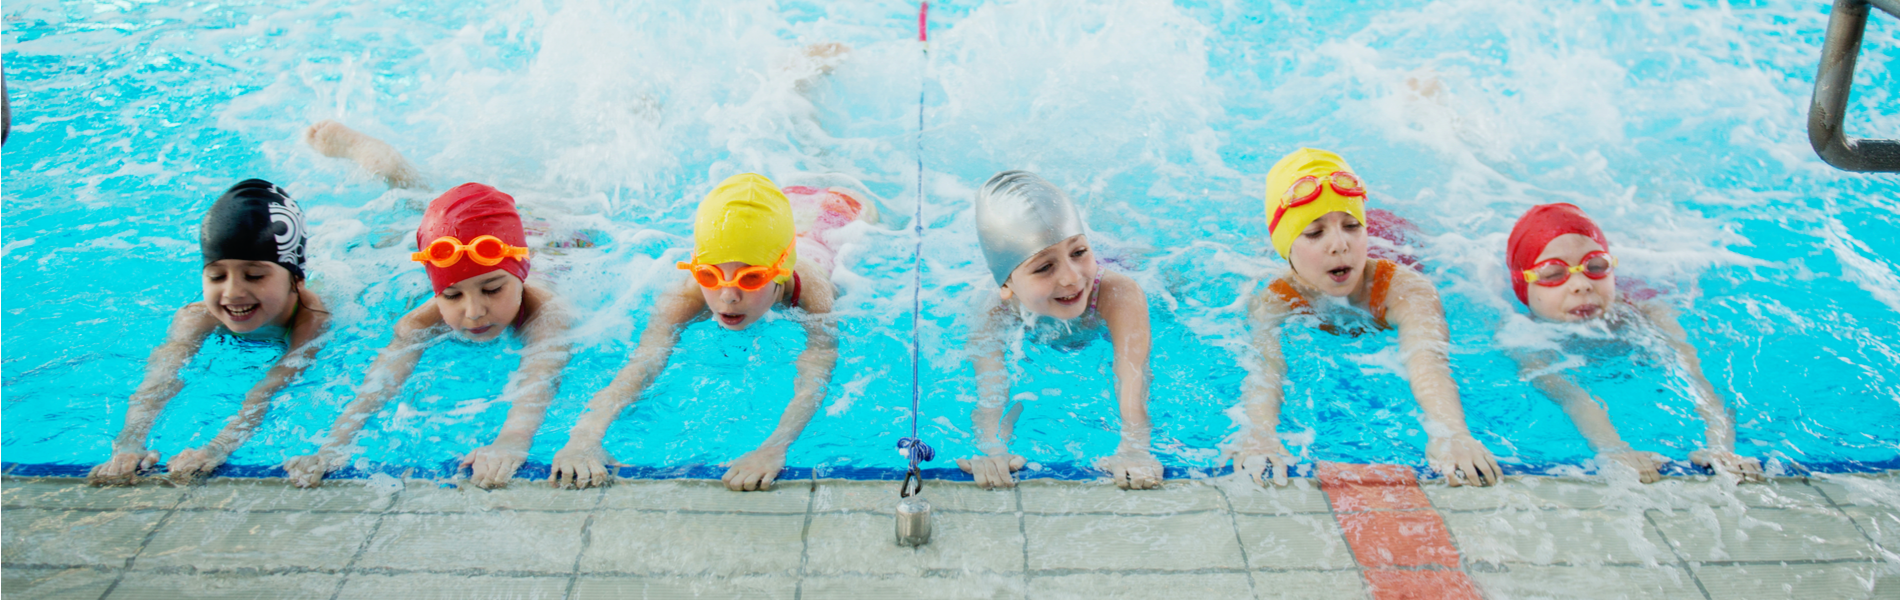 4 Ways to Increase Registrations for Your Aquatic Programs